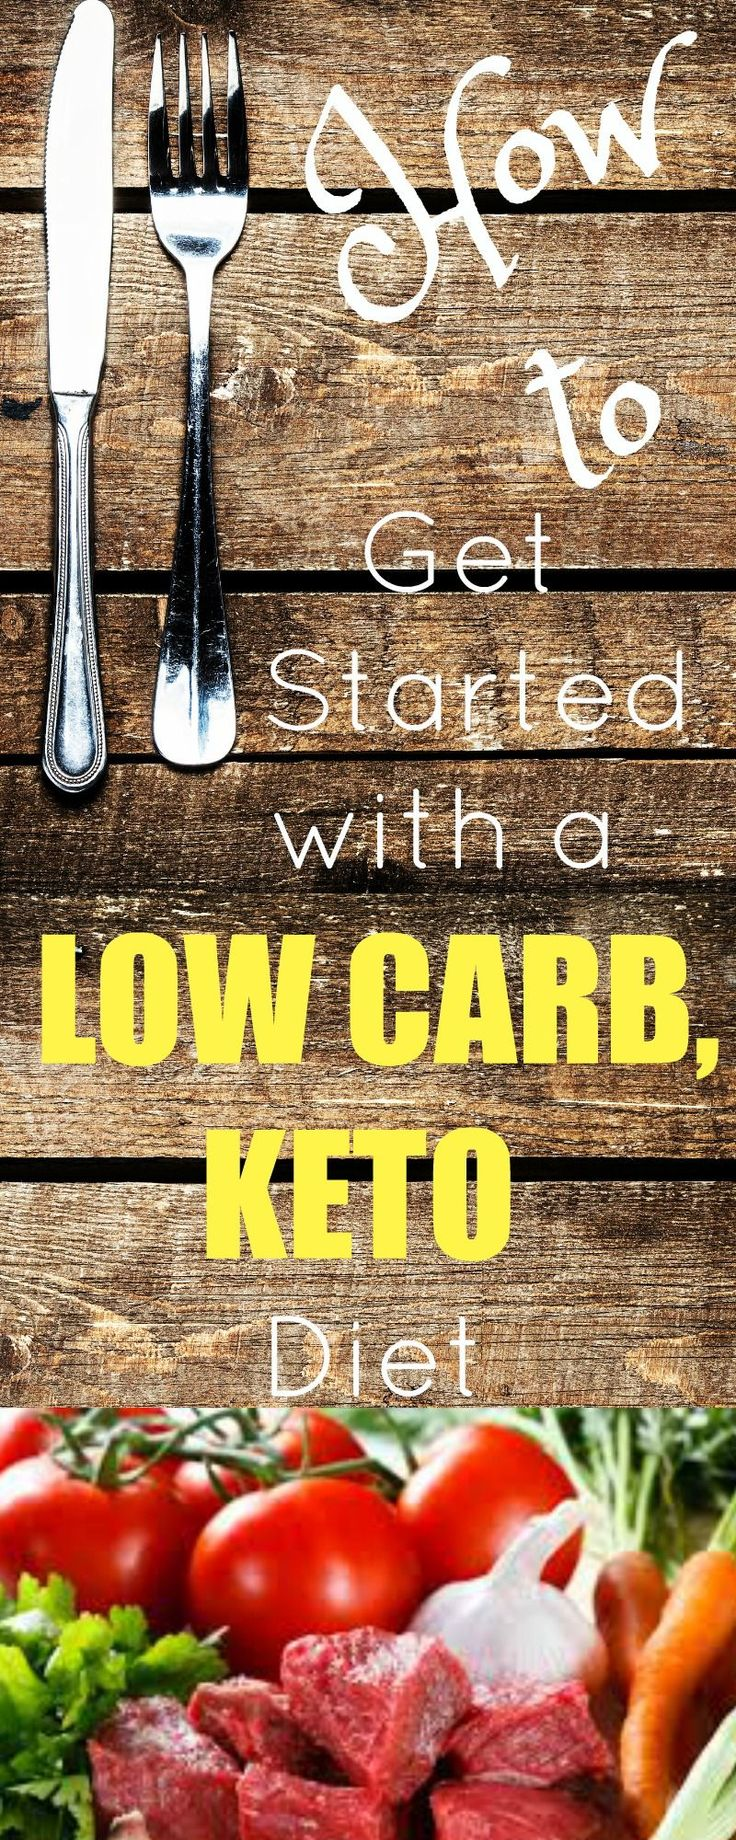 Keto Diet Plan: How to Get Started with a Low Carb Keto Diet | Peace Love and Low Carb  via Peac…